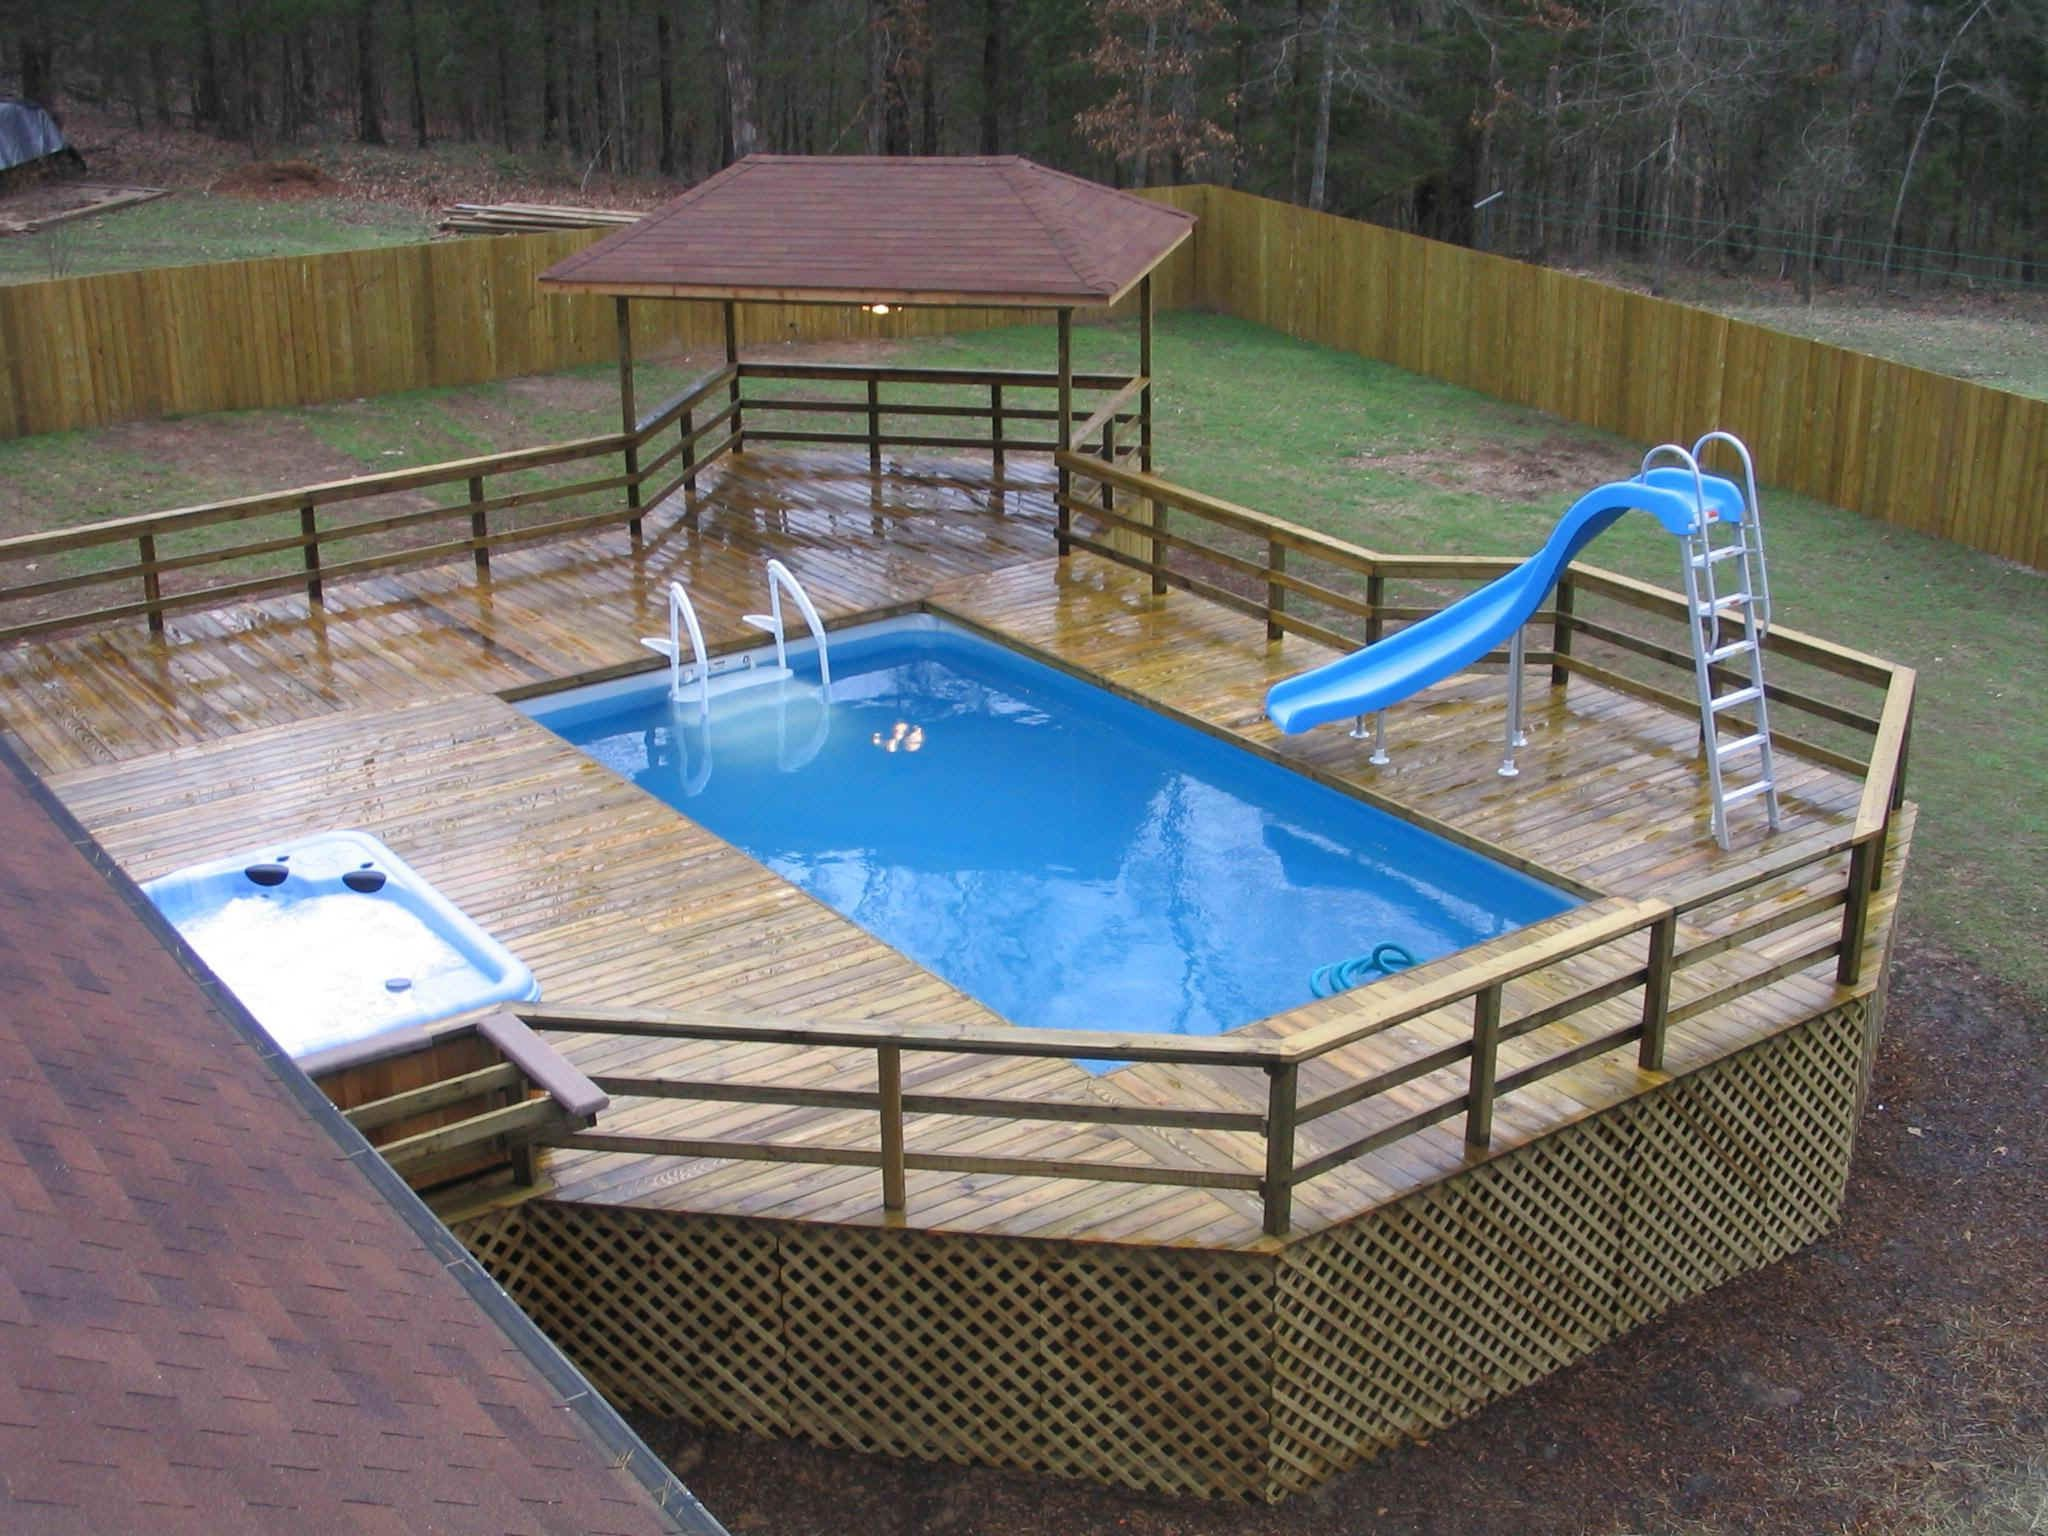 Narrowest rectangular above ground pool pool slides with wooden floor around rectangular - Above ground composite pool deck ...